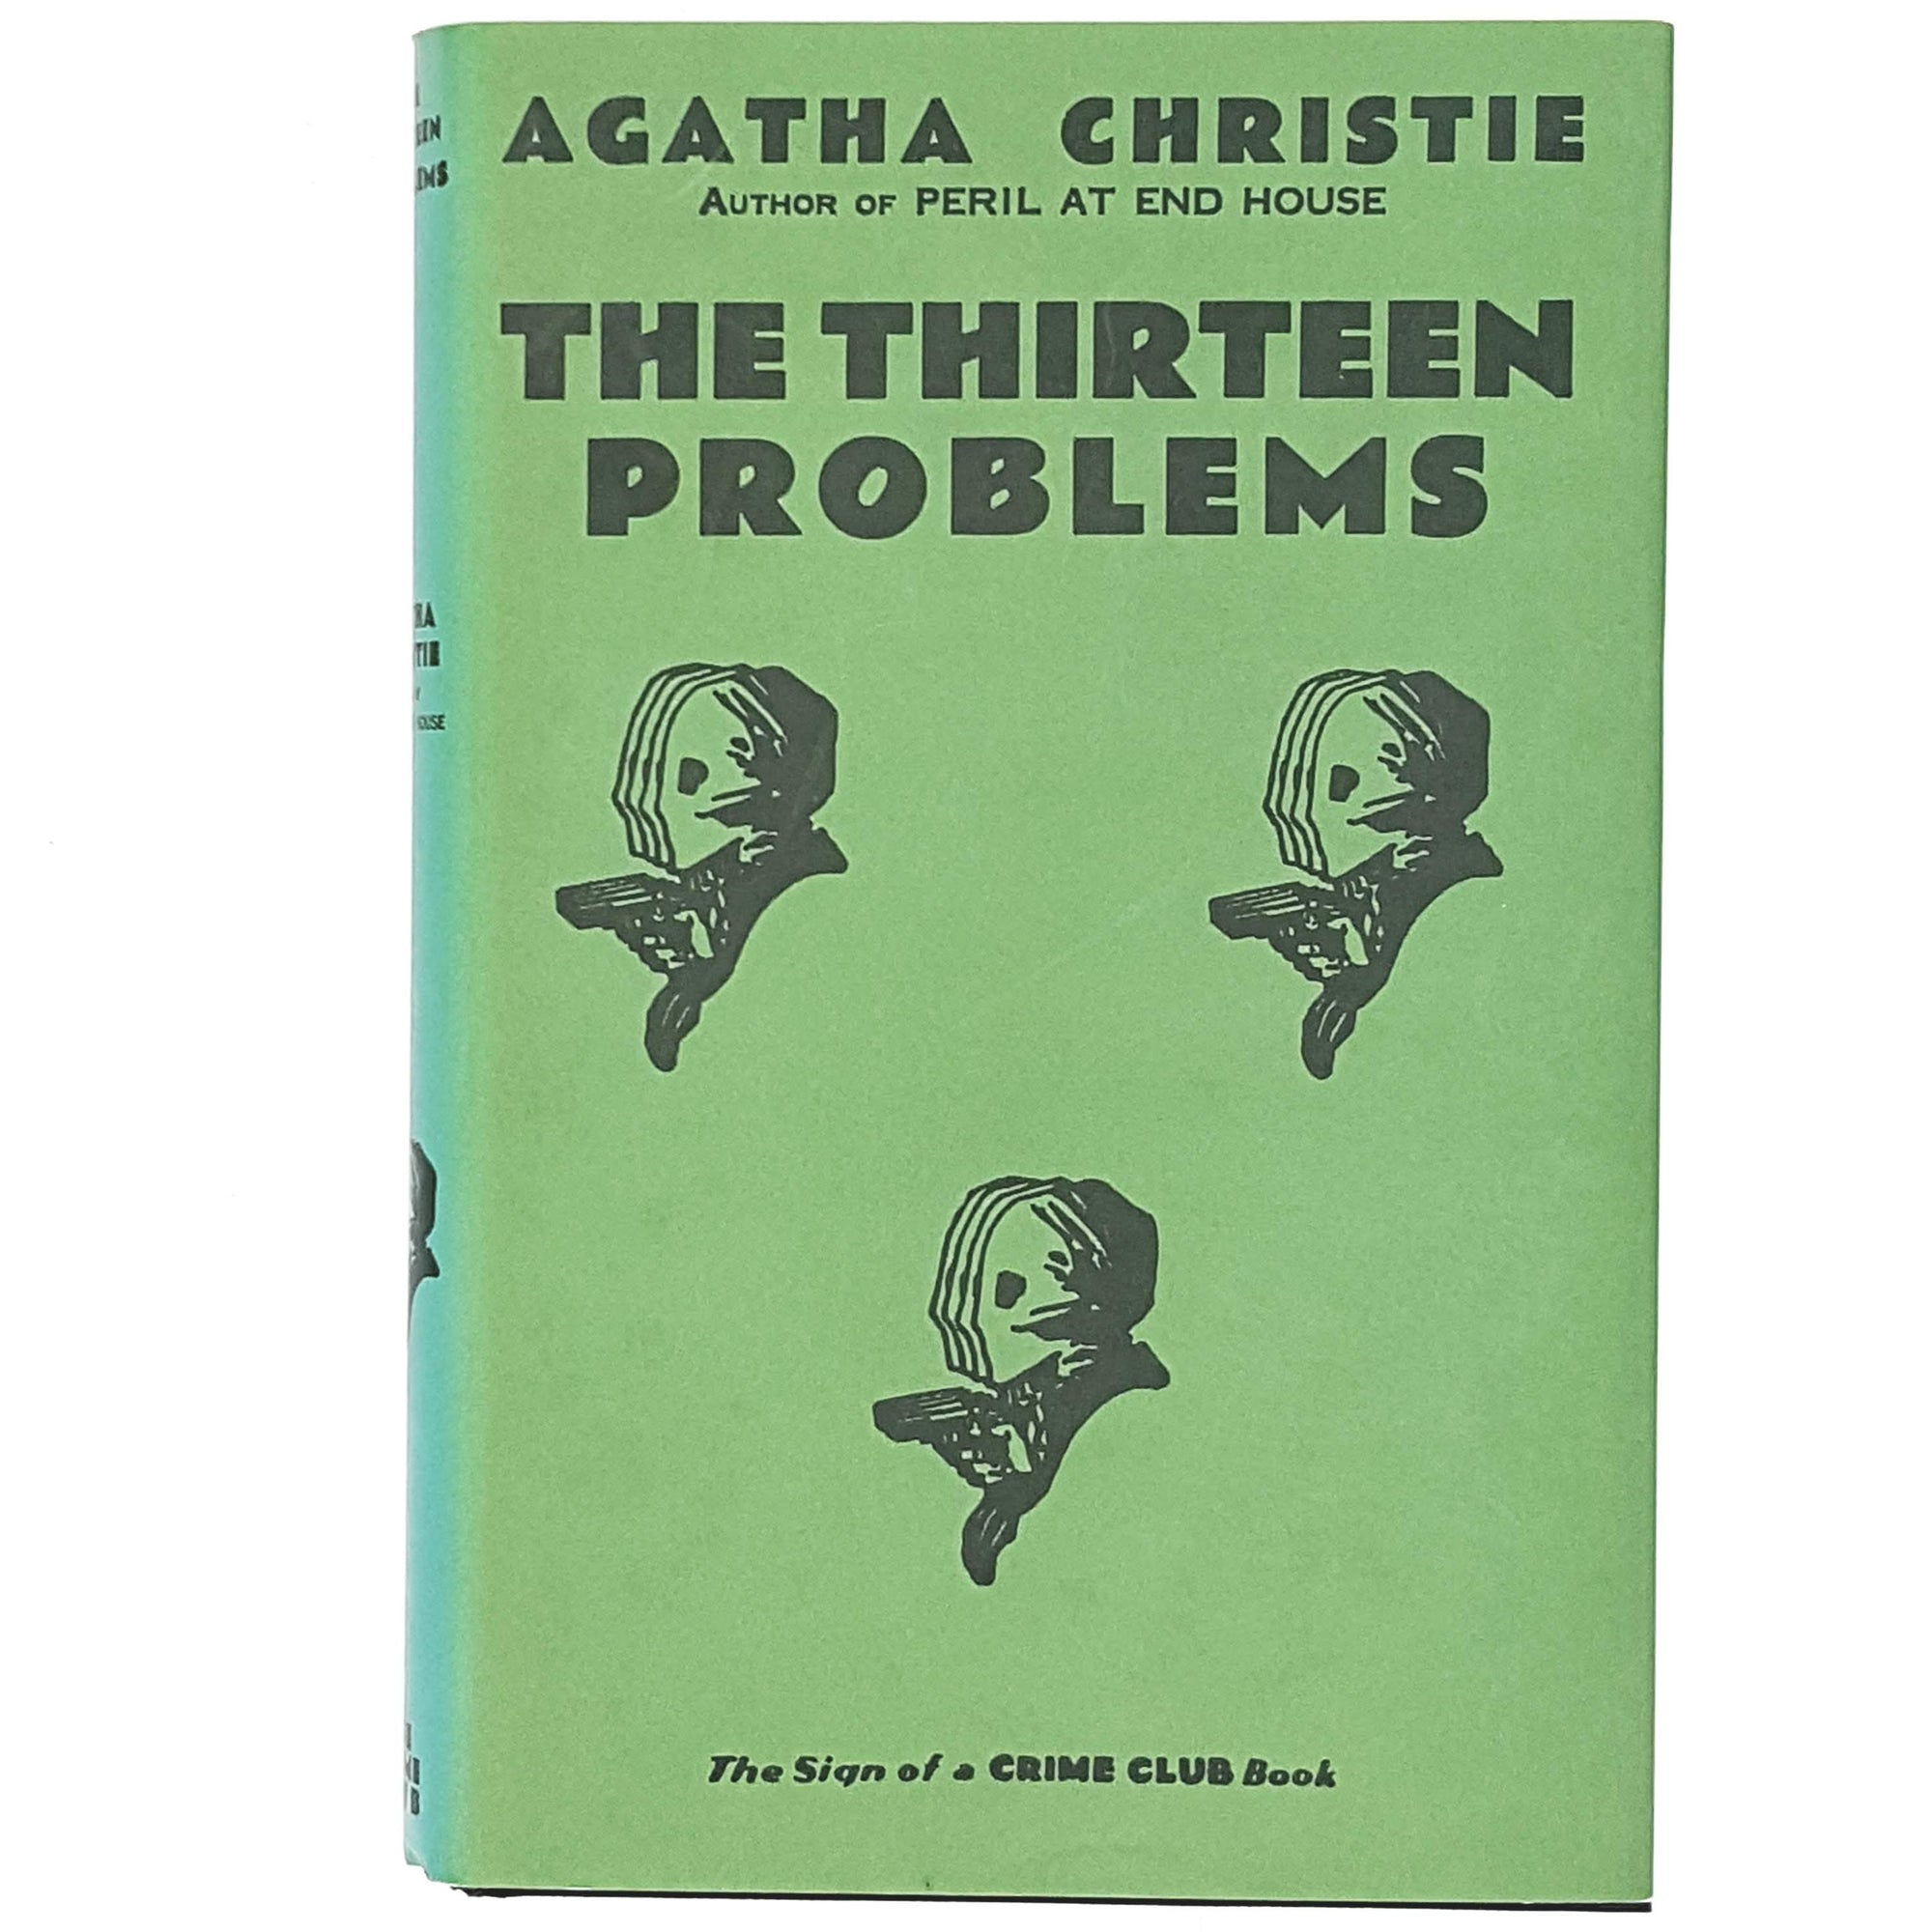 Agatha Christie's The Thirteen Problems